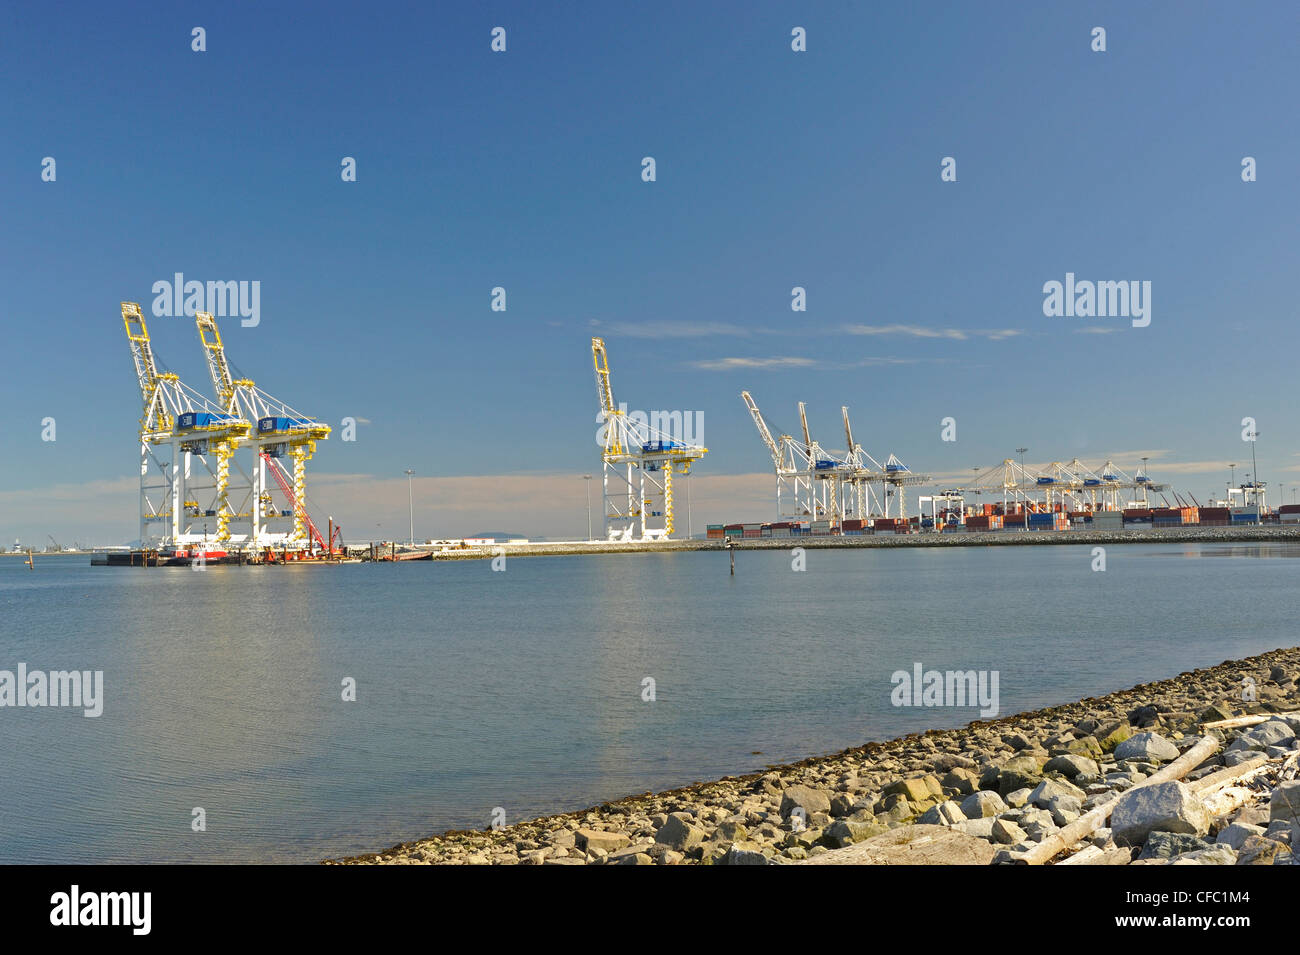 cranes for loading containers onto ships, Roberts Bank Coal Port, South Delta, British Columbia, Canada - Stock Image